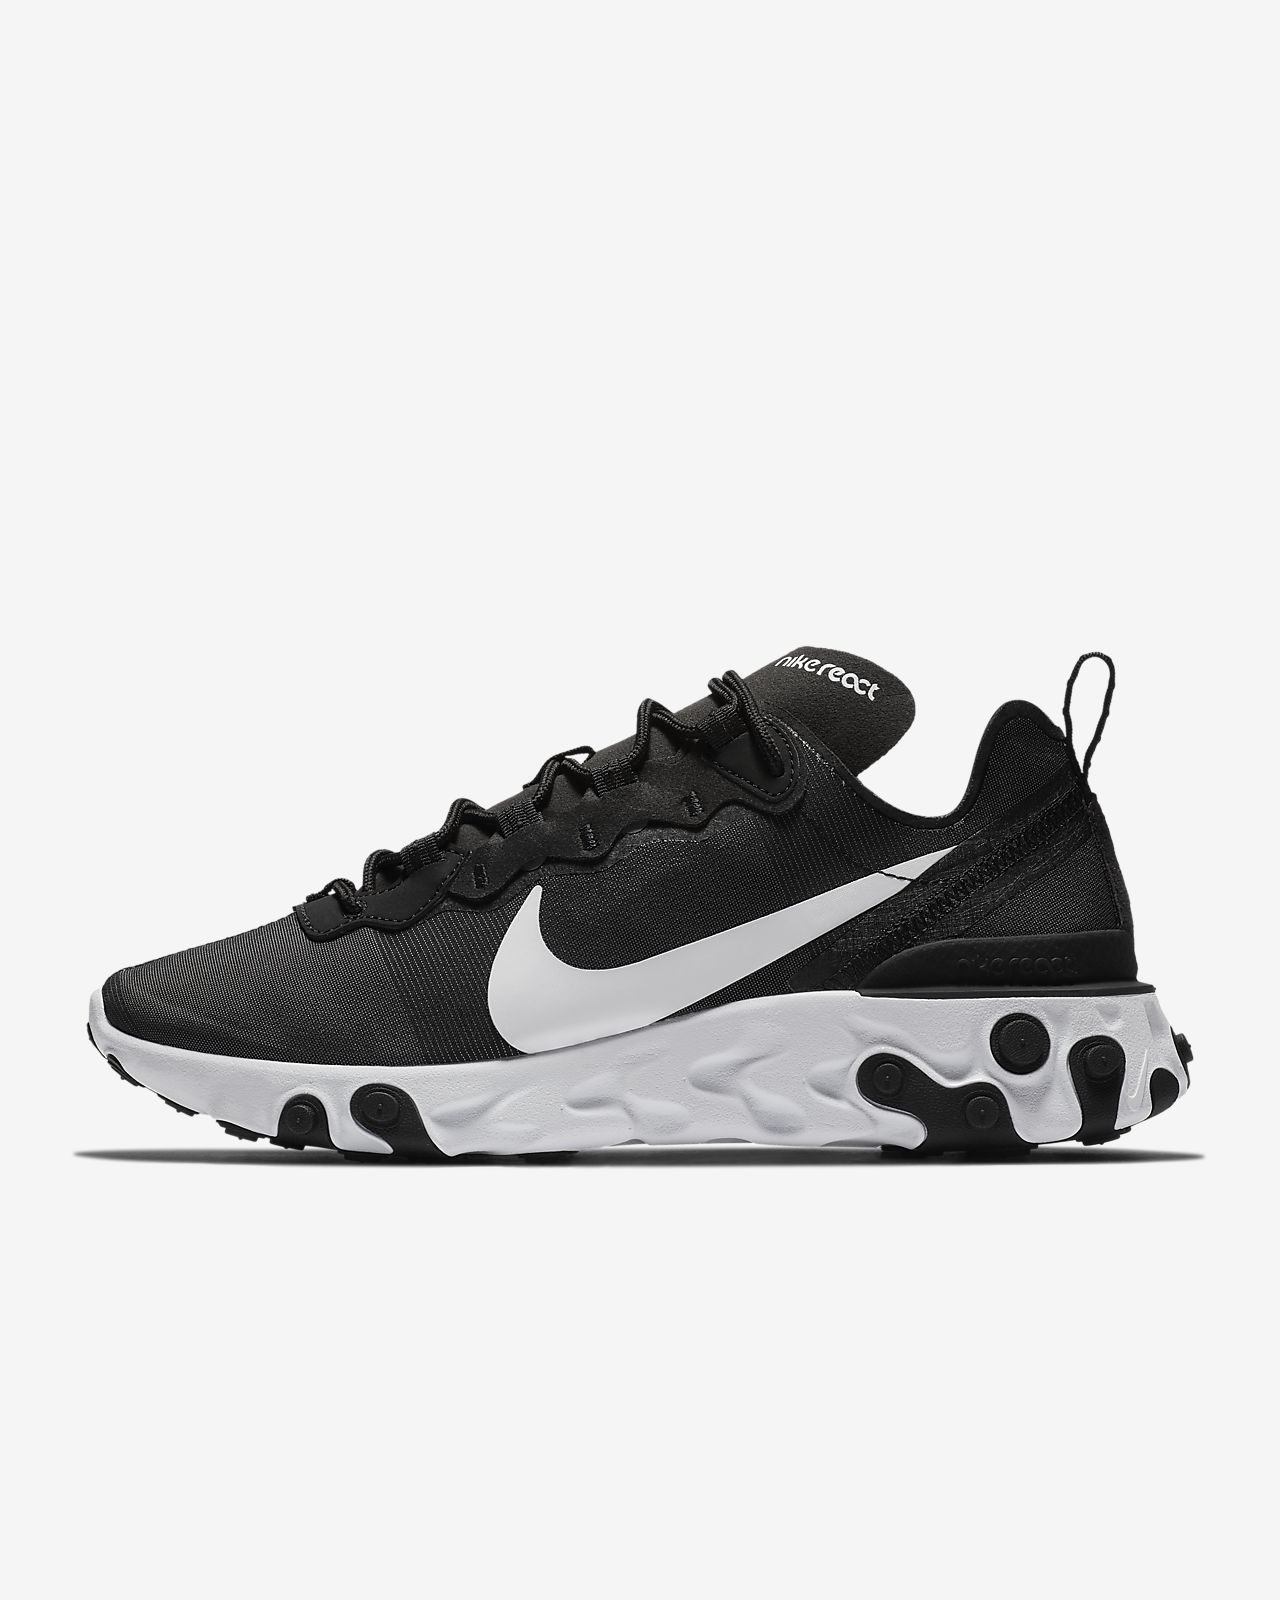 c8e512c66675 Nike React Element 55 Women s Shoe. Nike.com GB